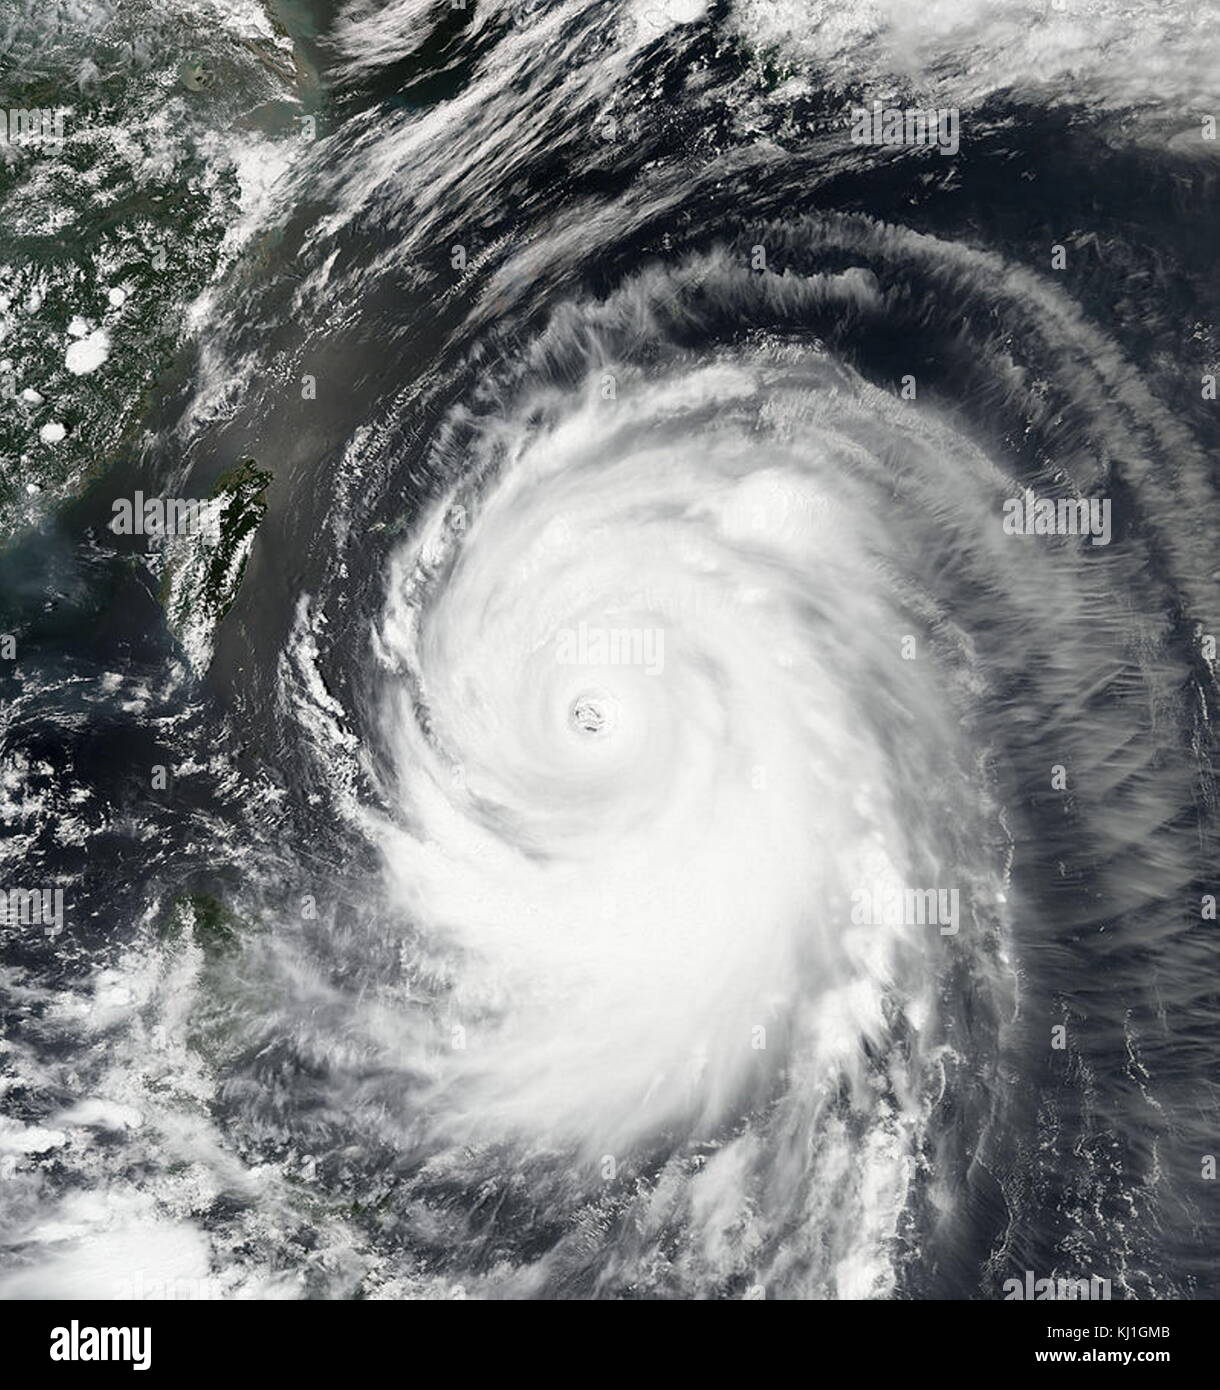 Typhoon Neoguri, known in the Philippines as Typhoon Florita, was a large and powerful tropical cyclone which mainly - Stock Image